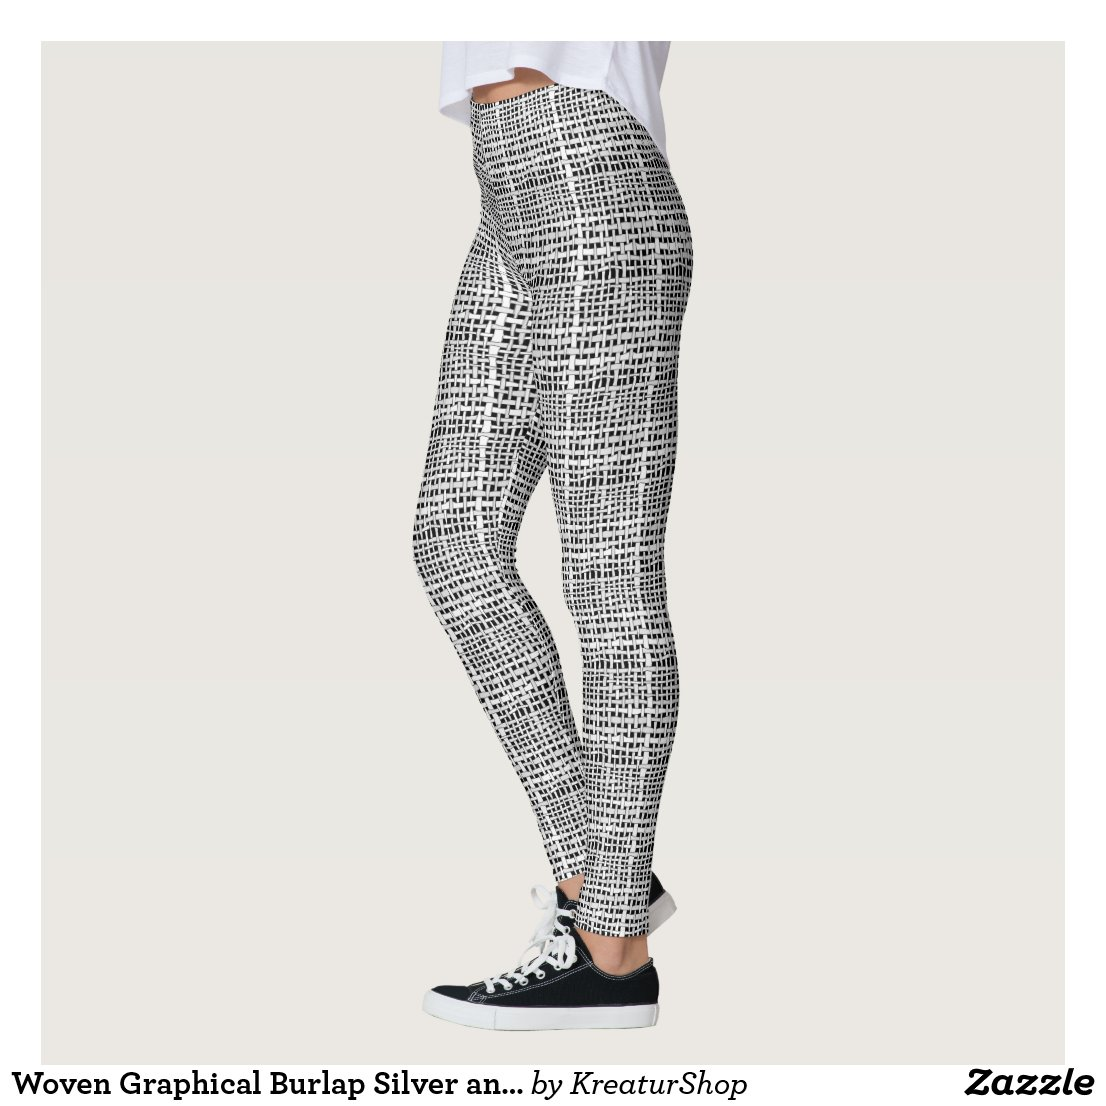 Woven Graphical Burlap Silver and Black